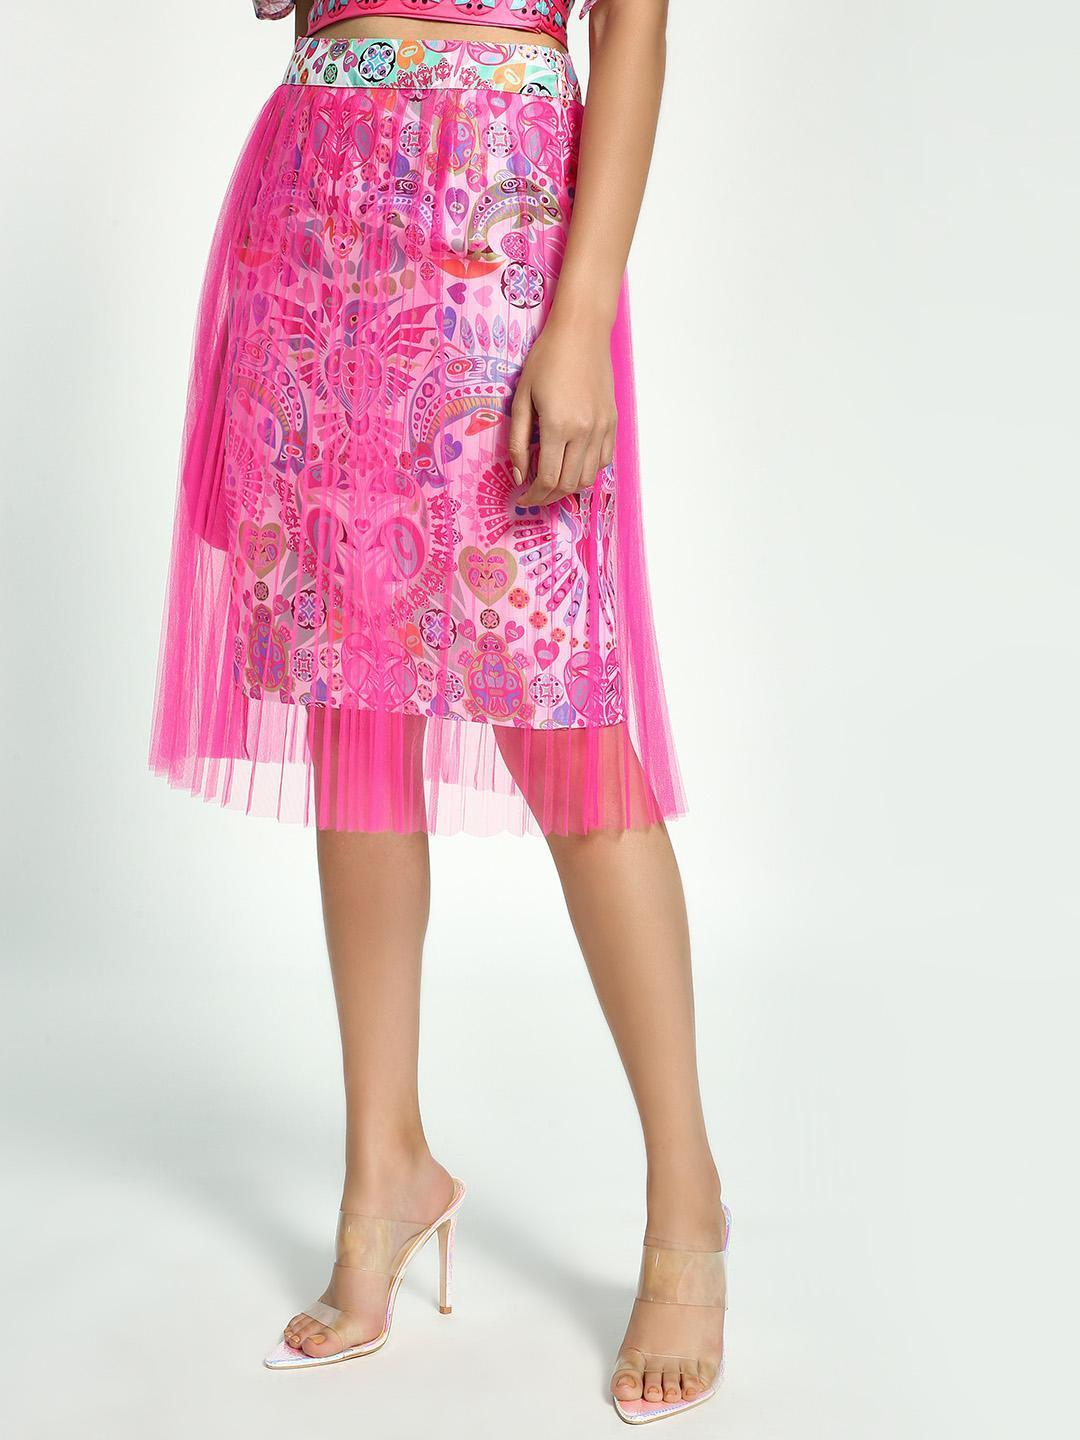 Manish Arora Paris X KOOVS Pink Digital Print Pleated Mesh Midi Skirt 1